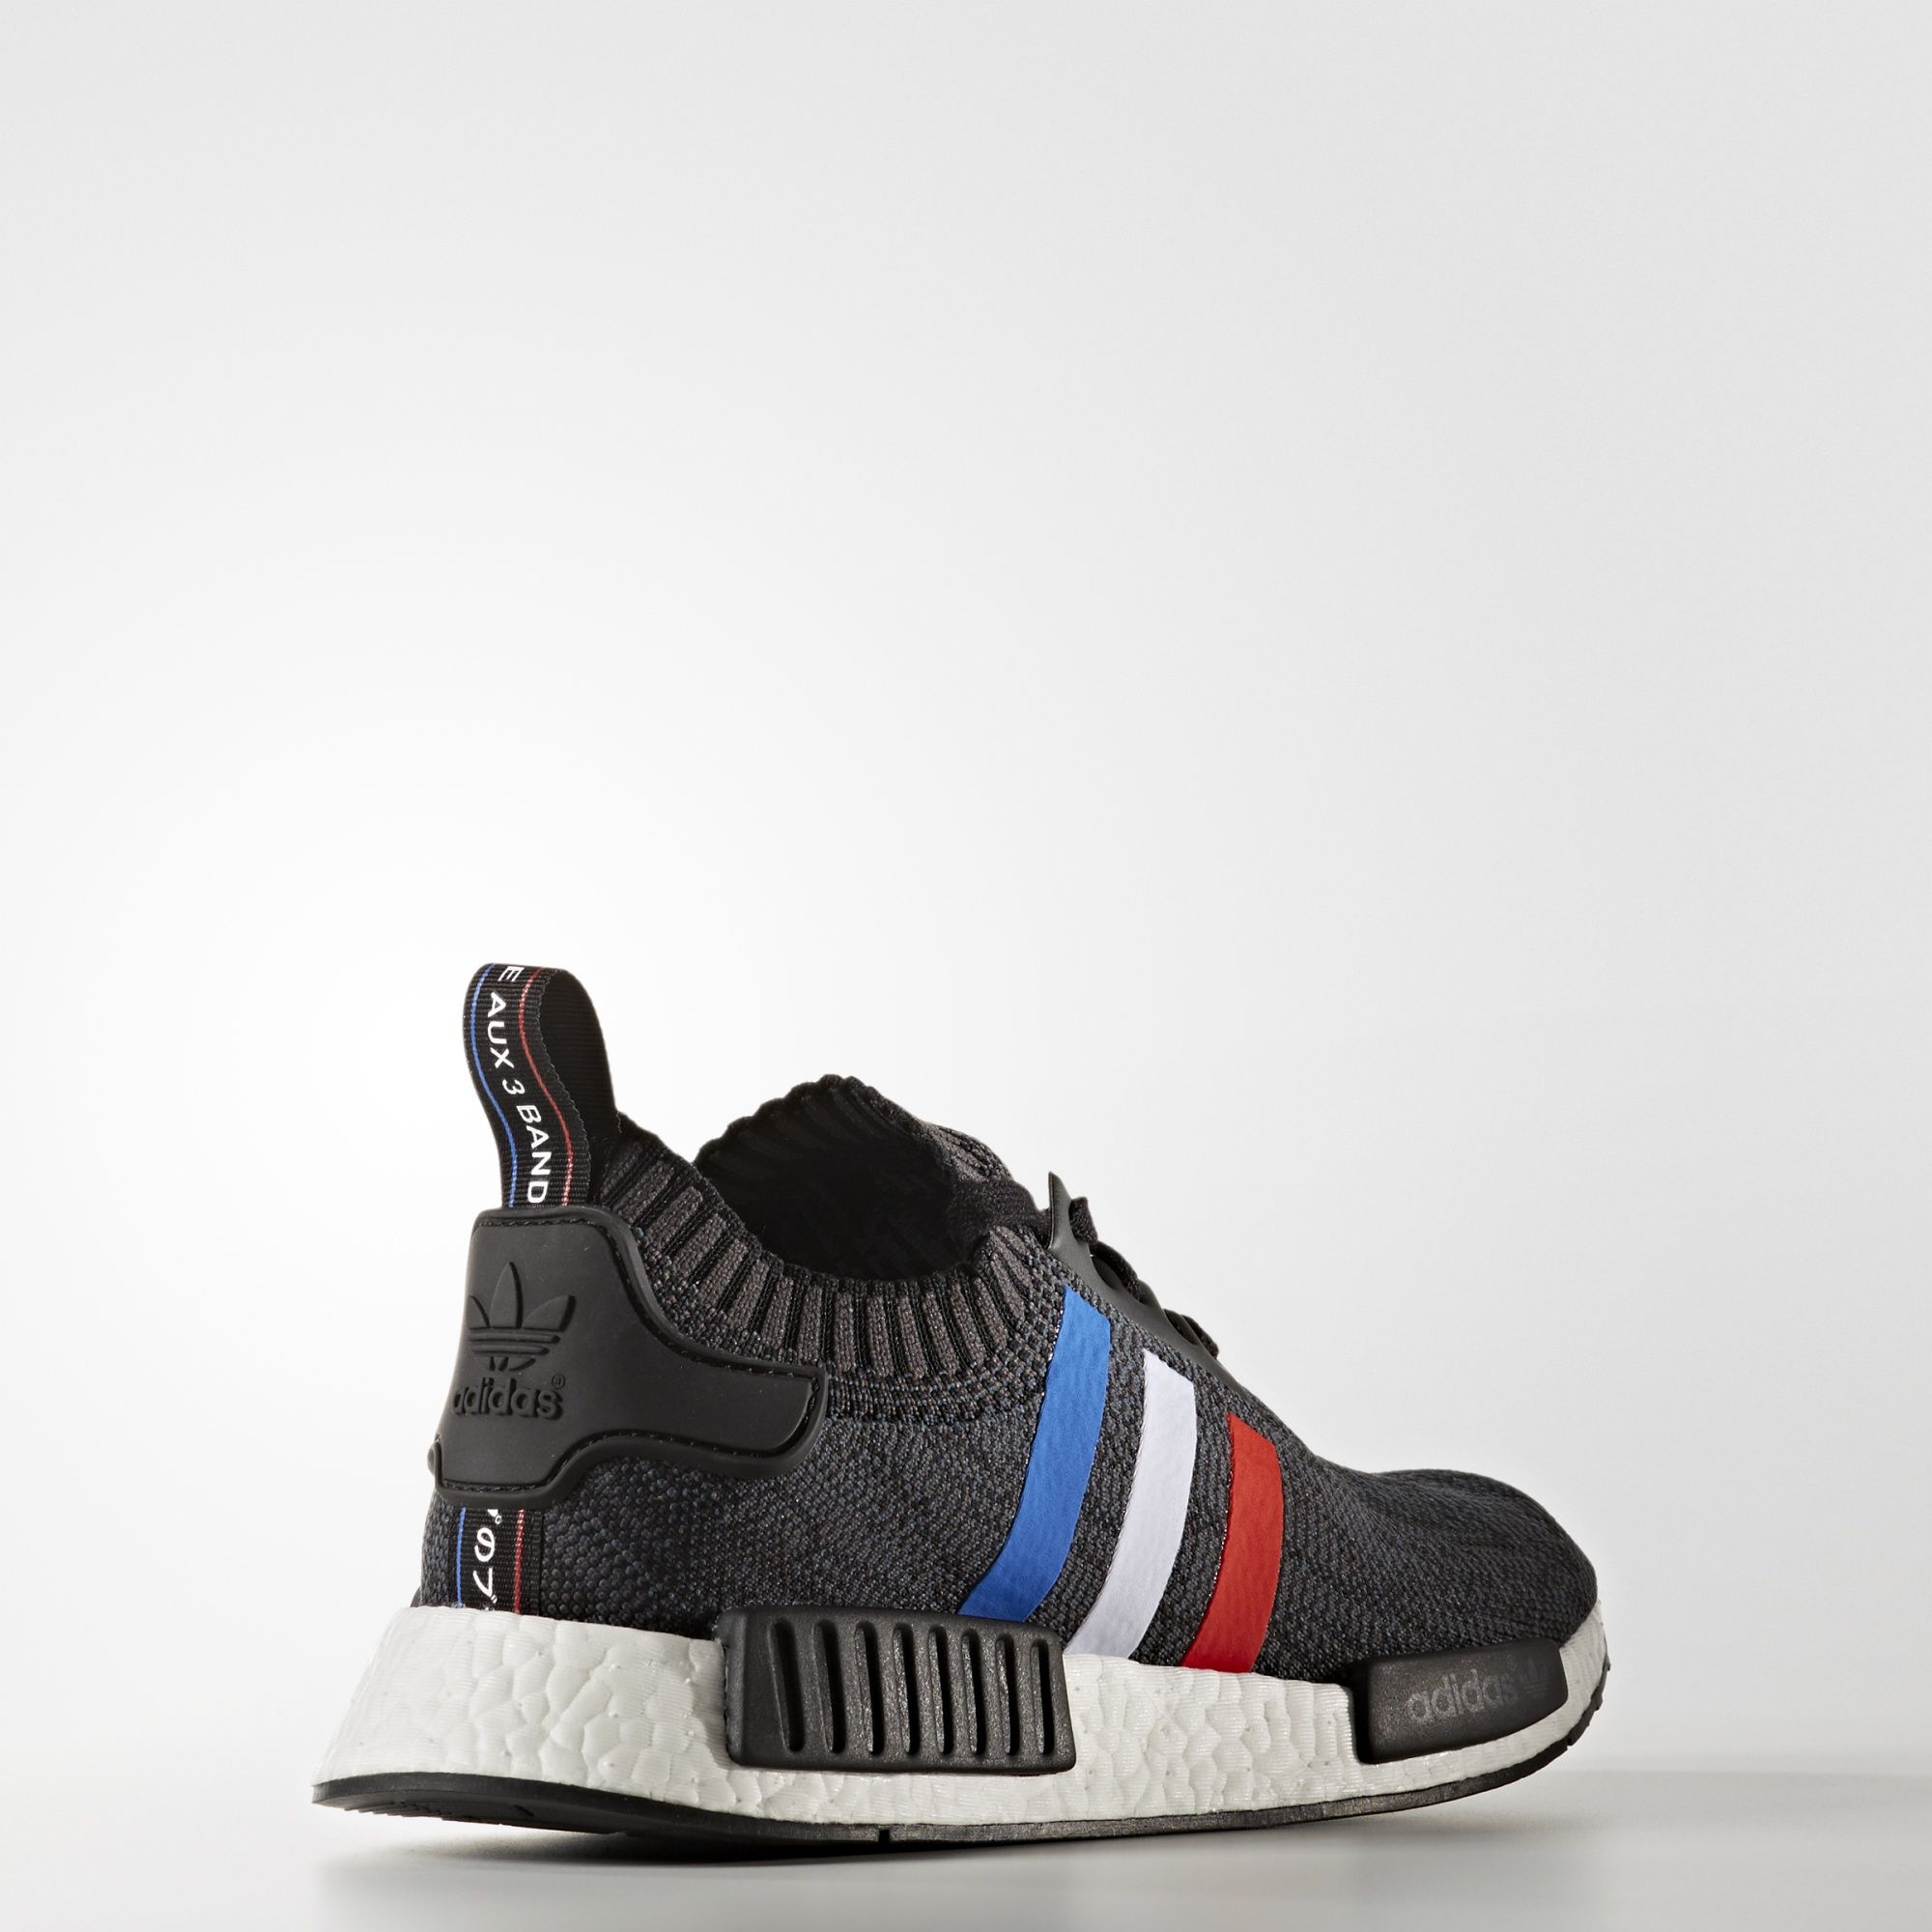 adidas NMD R1 Primeknit Tri Color Black BB2887 3